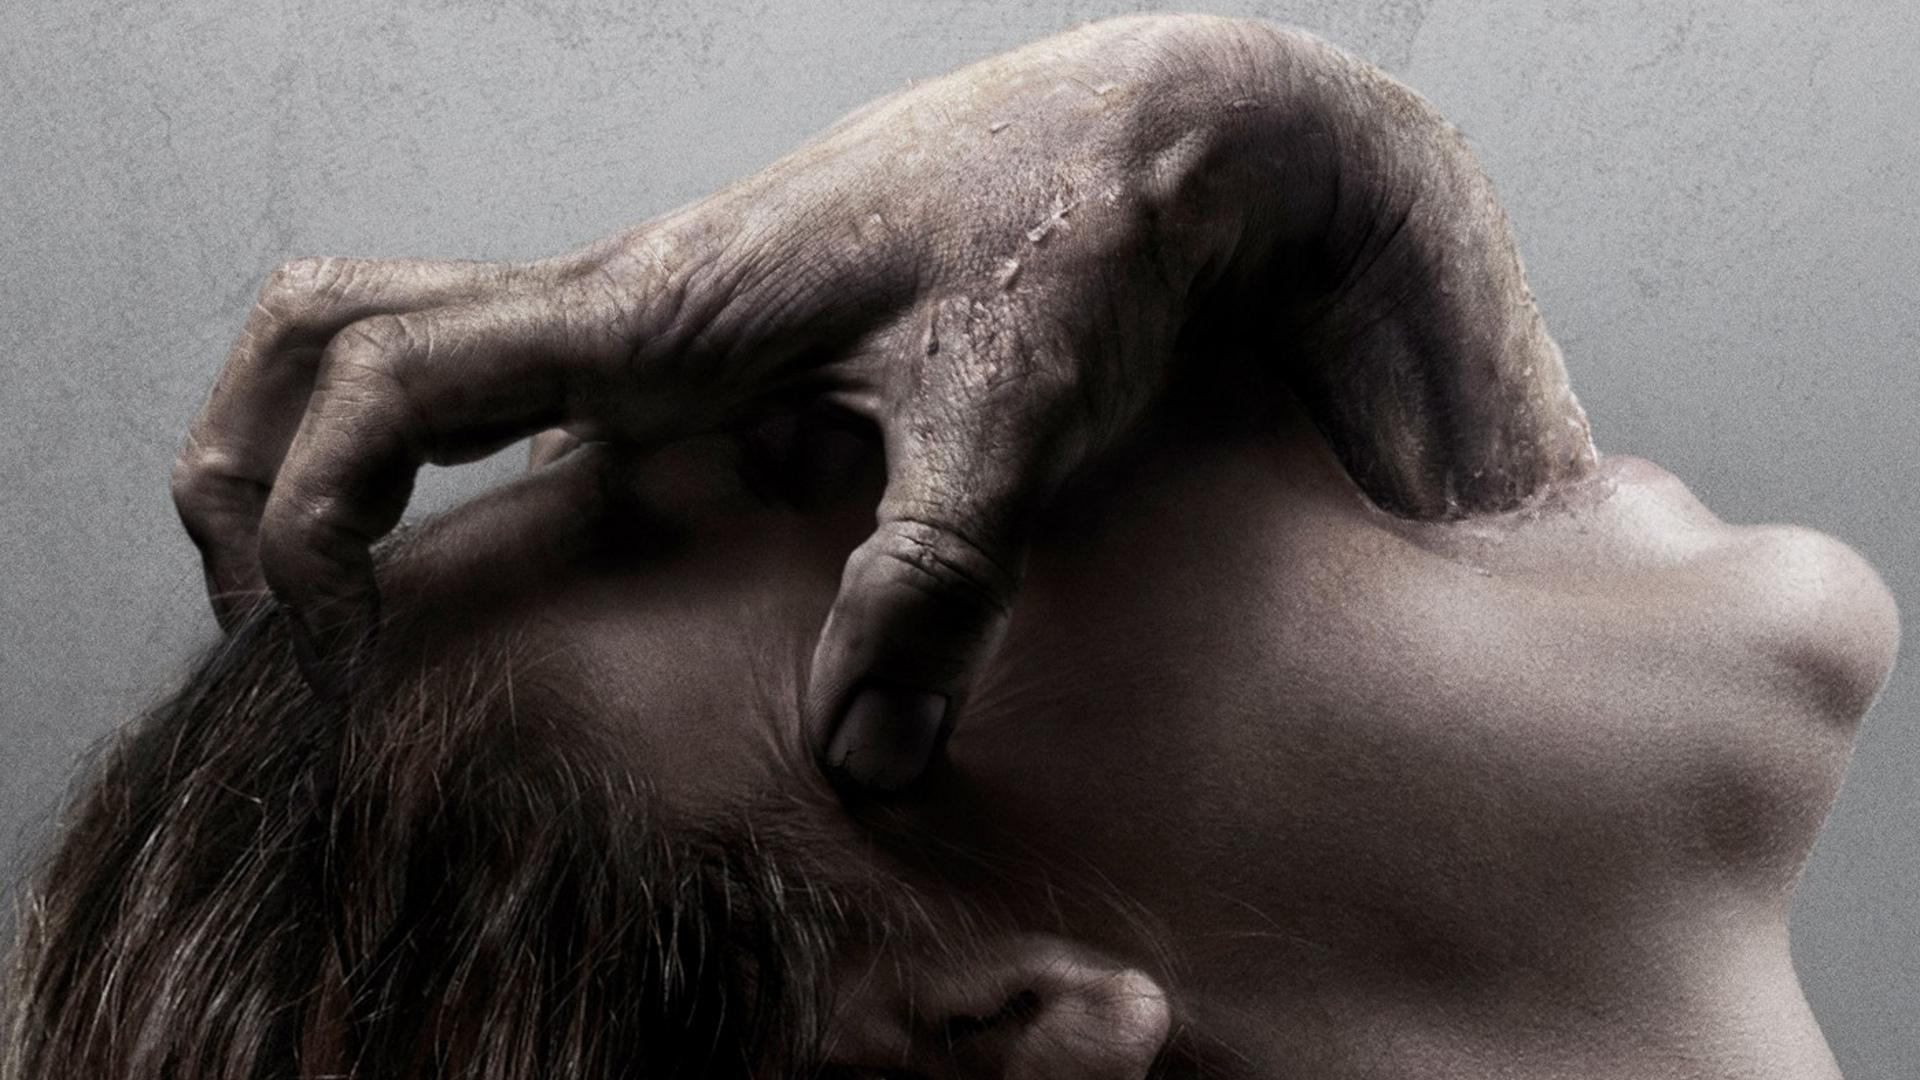 The Possession - Démoni doboz (2012)